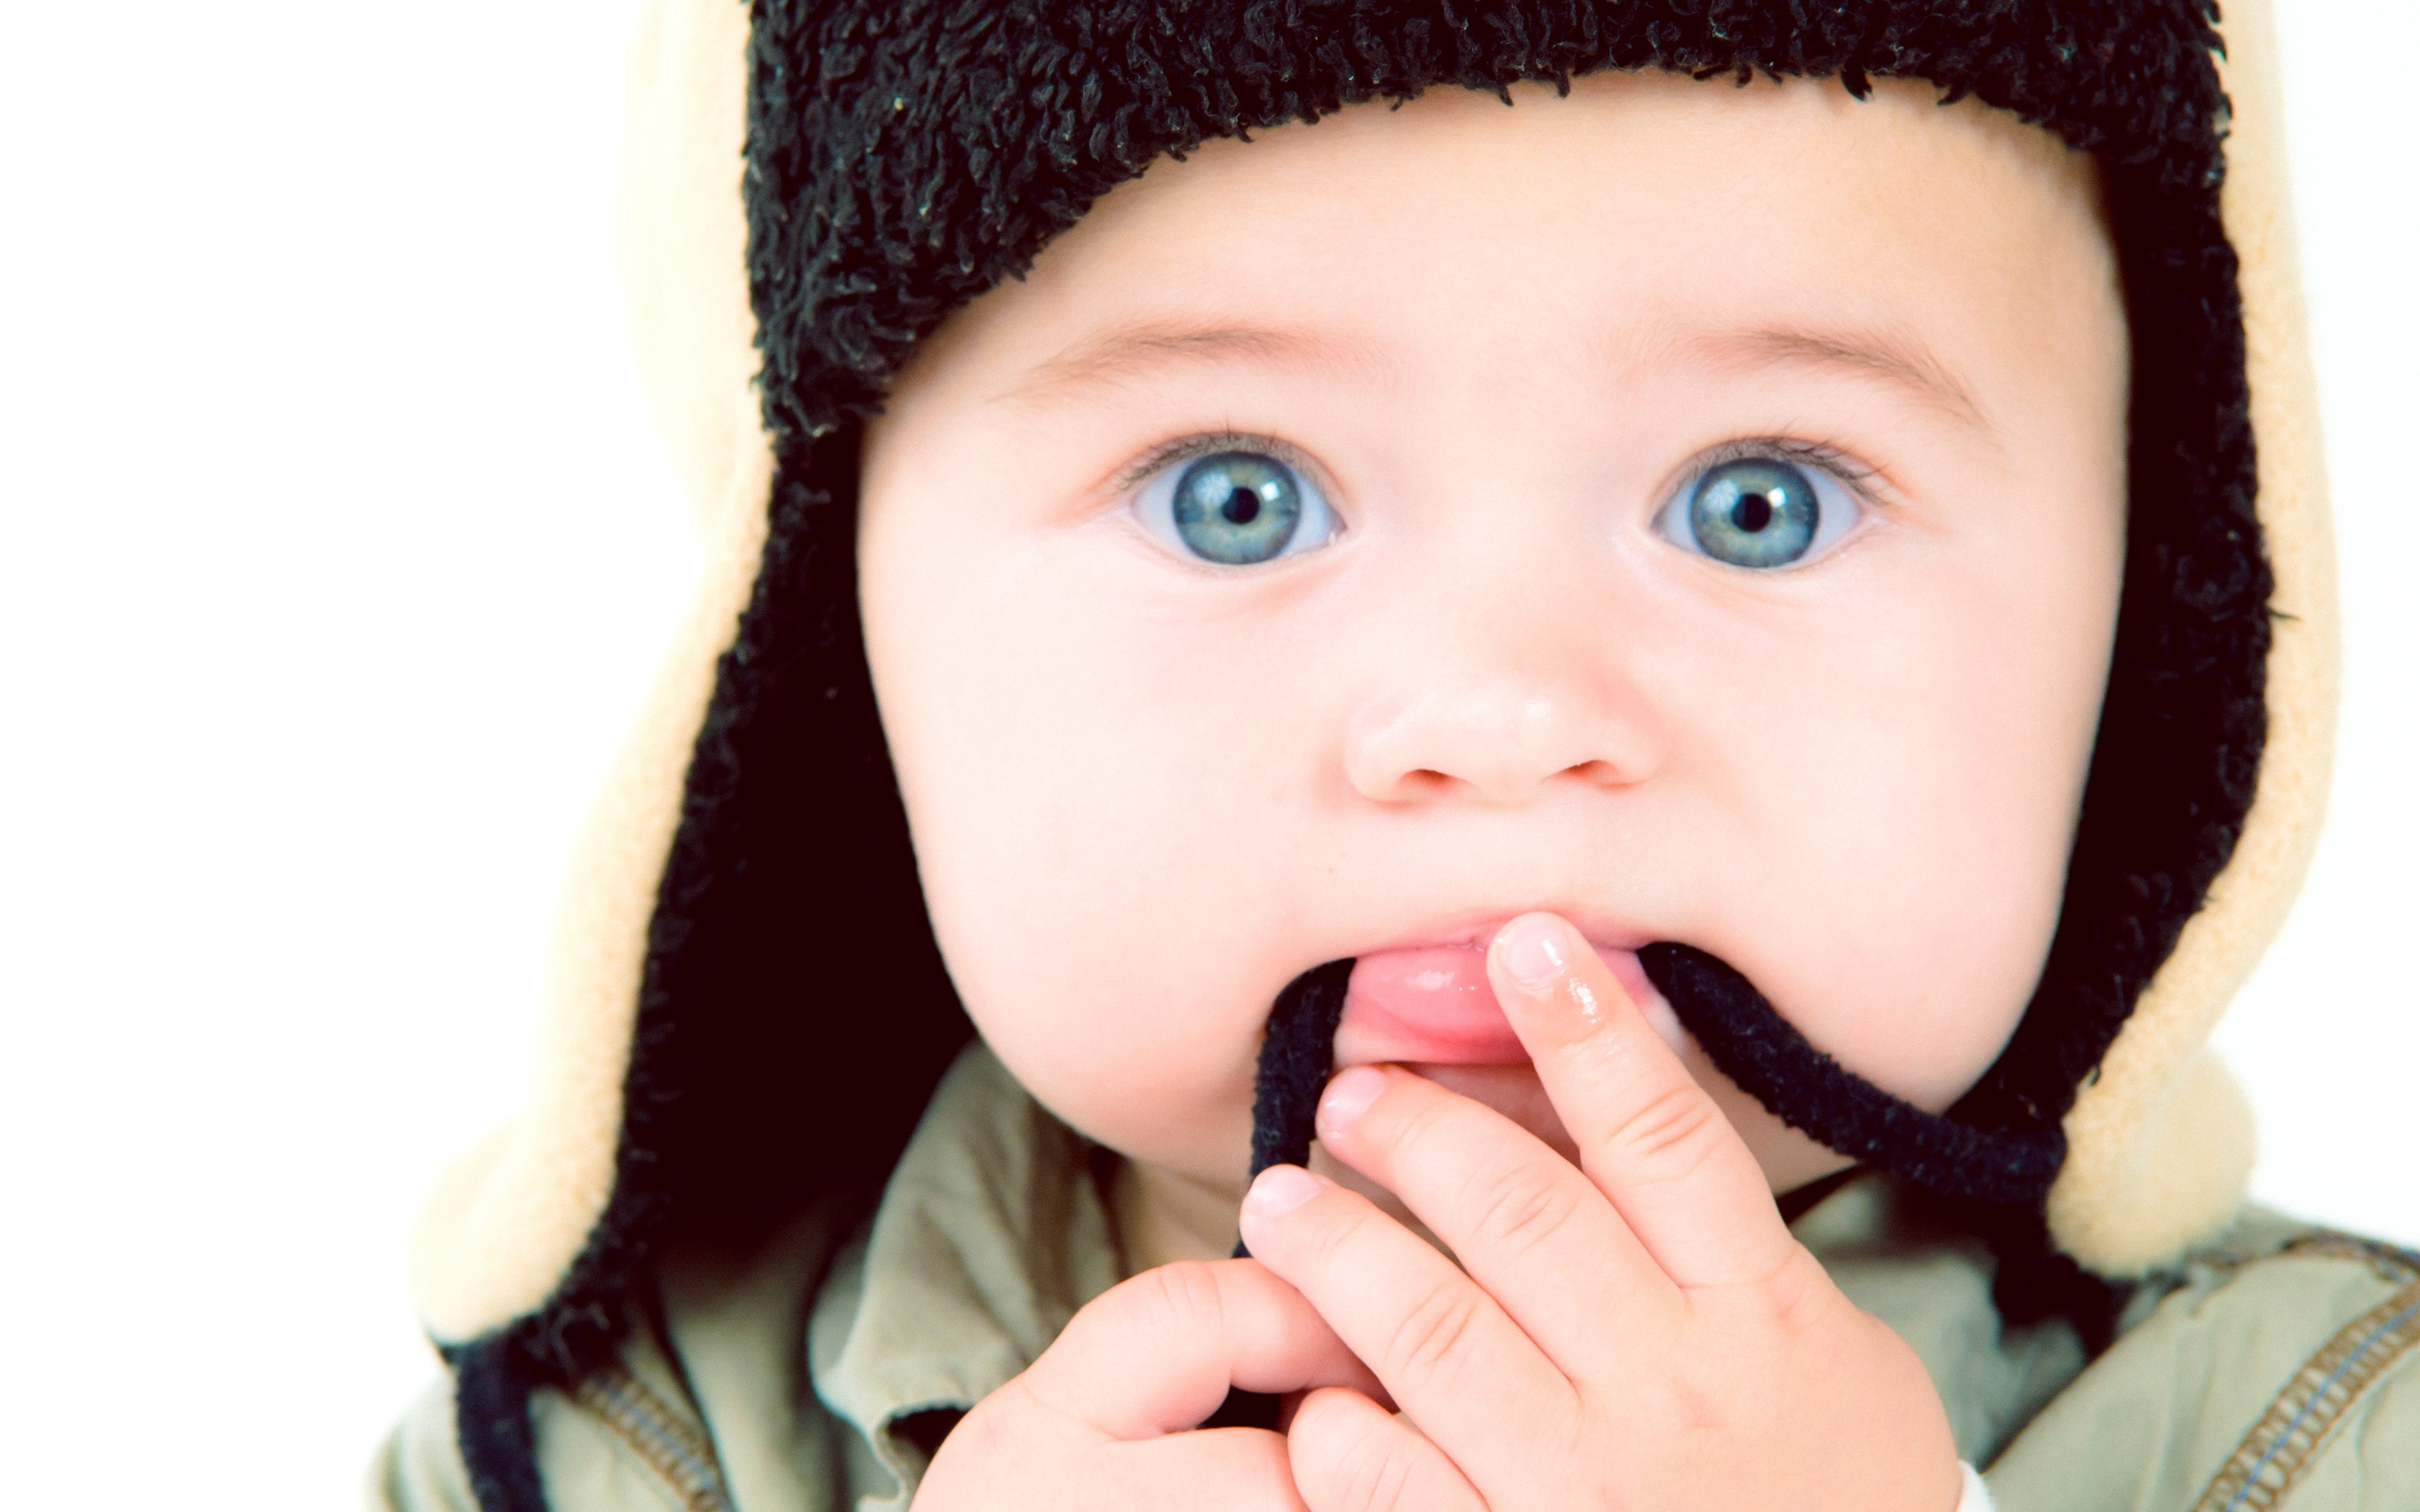 Uber Cute Boy Wallpapers In Jpg Format For Free Download